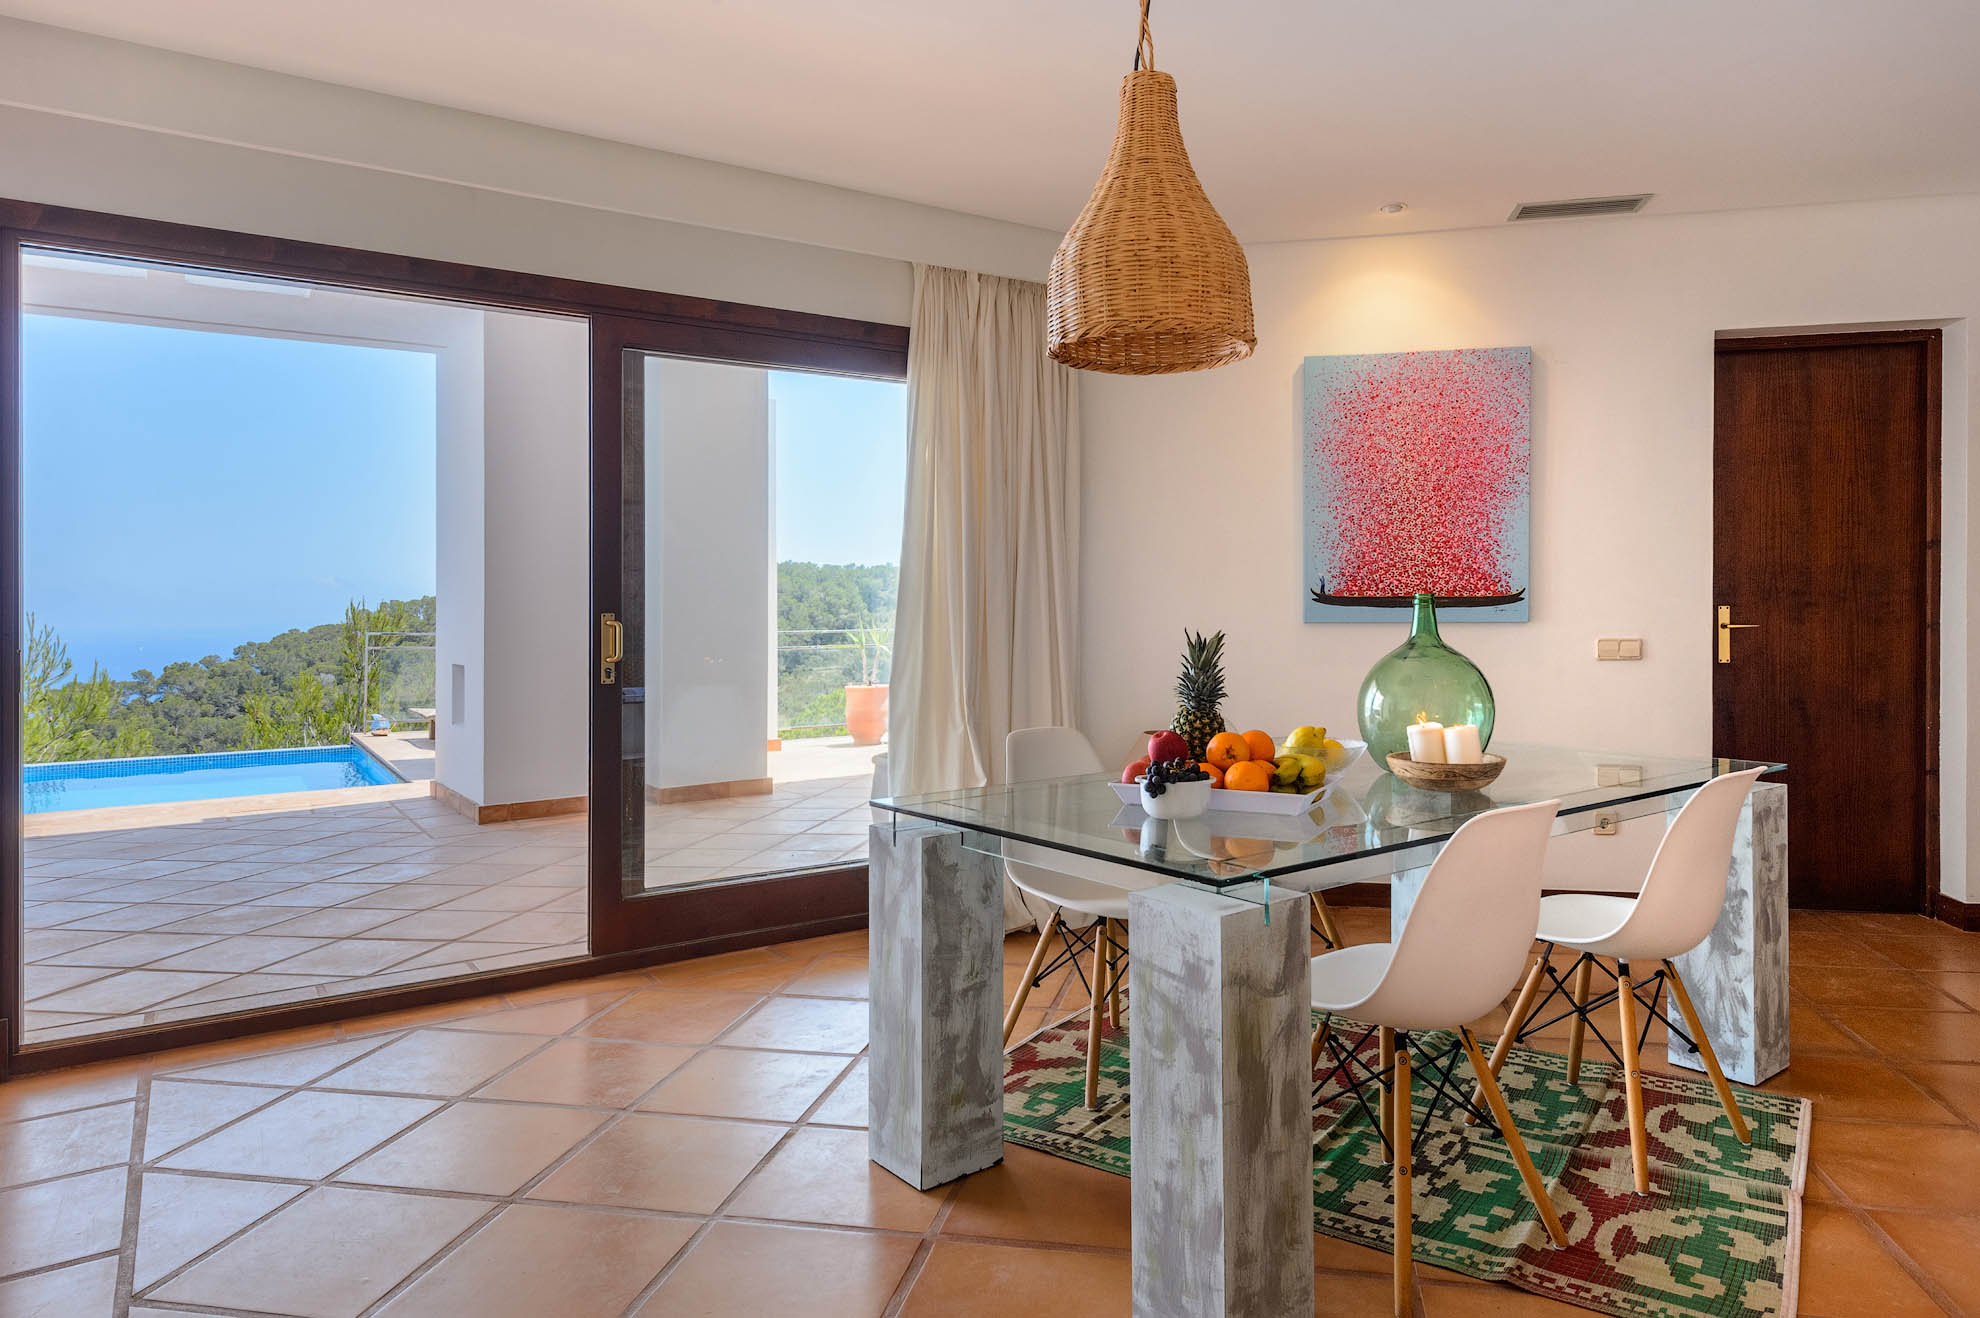 Amazing villa in Es Cubells with the best views on Ibiza